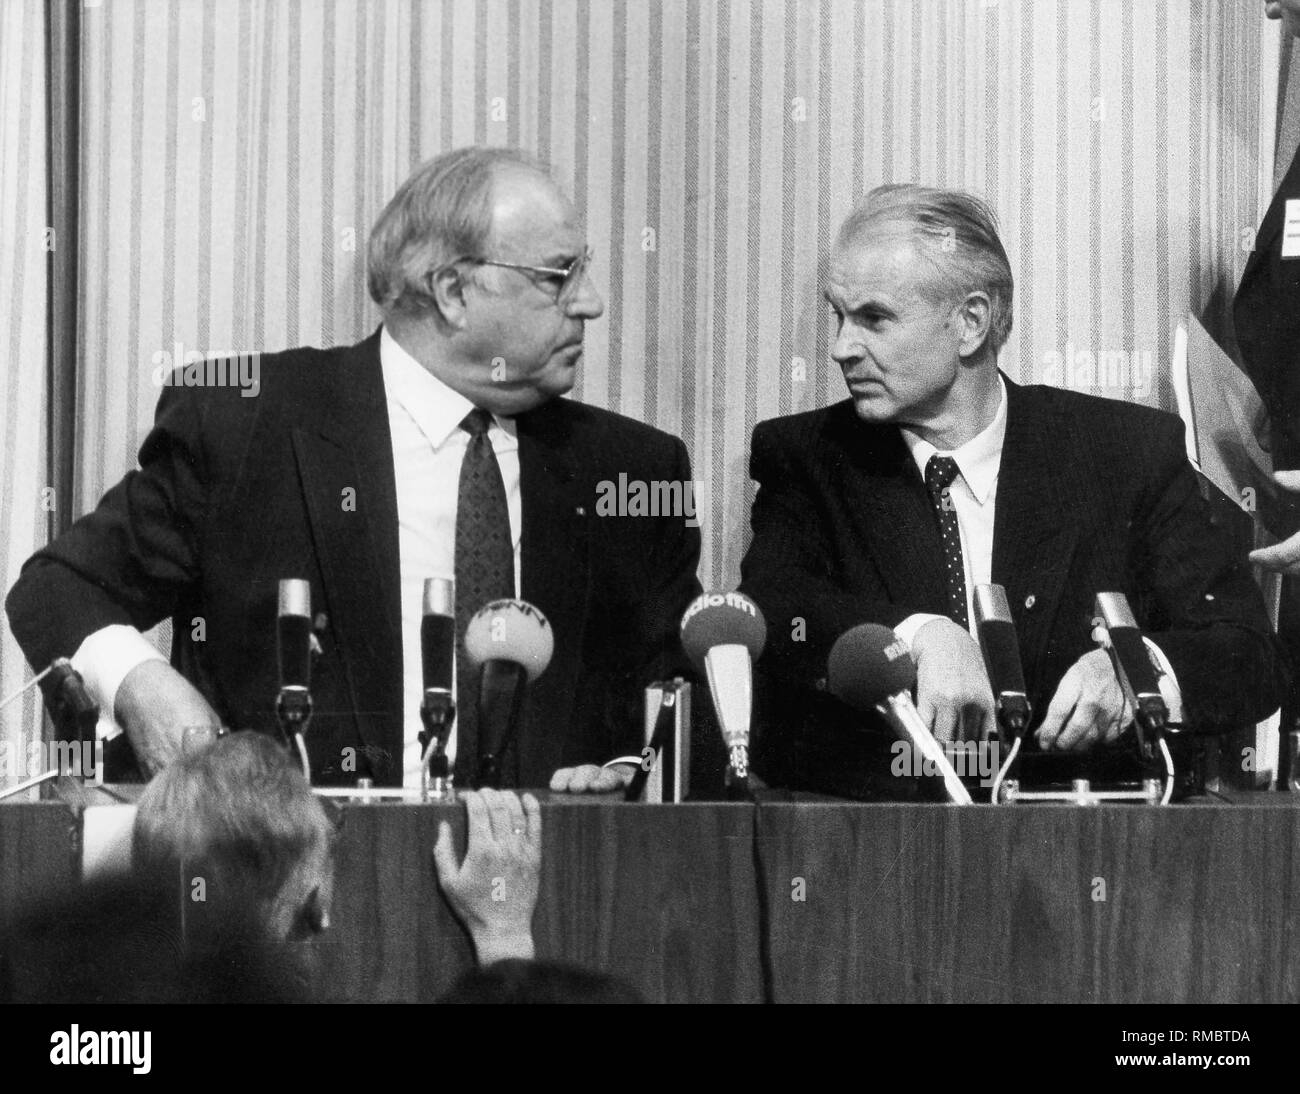 German chancellor Helmut Kohl (left) and the prime minister of the DDR Hans Modrow on a press conference in Dresden during Kohl's visit in Dresden. - Stock Image